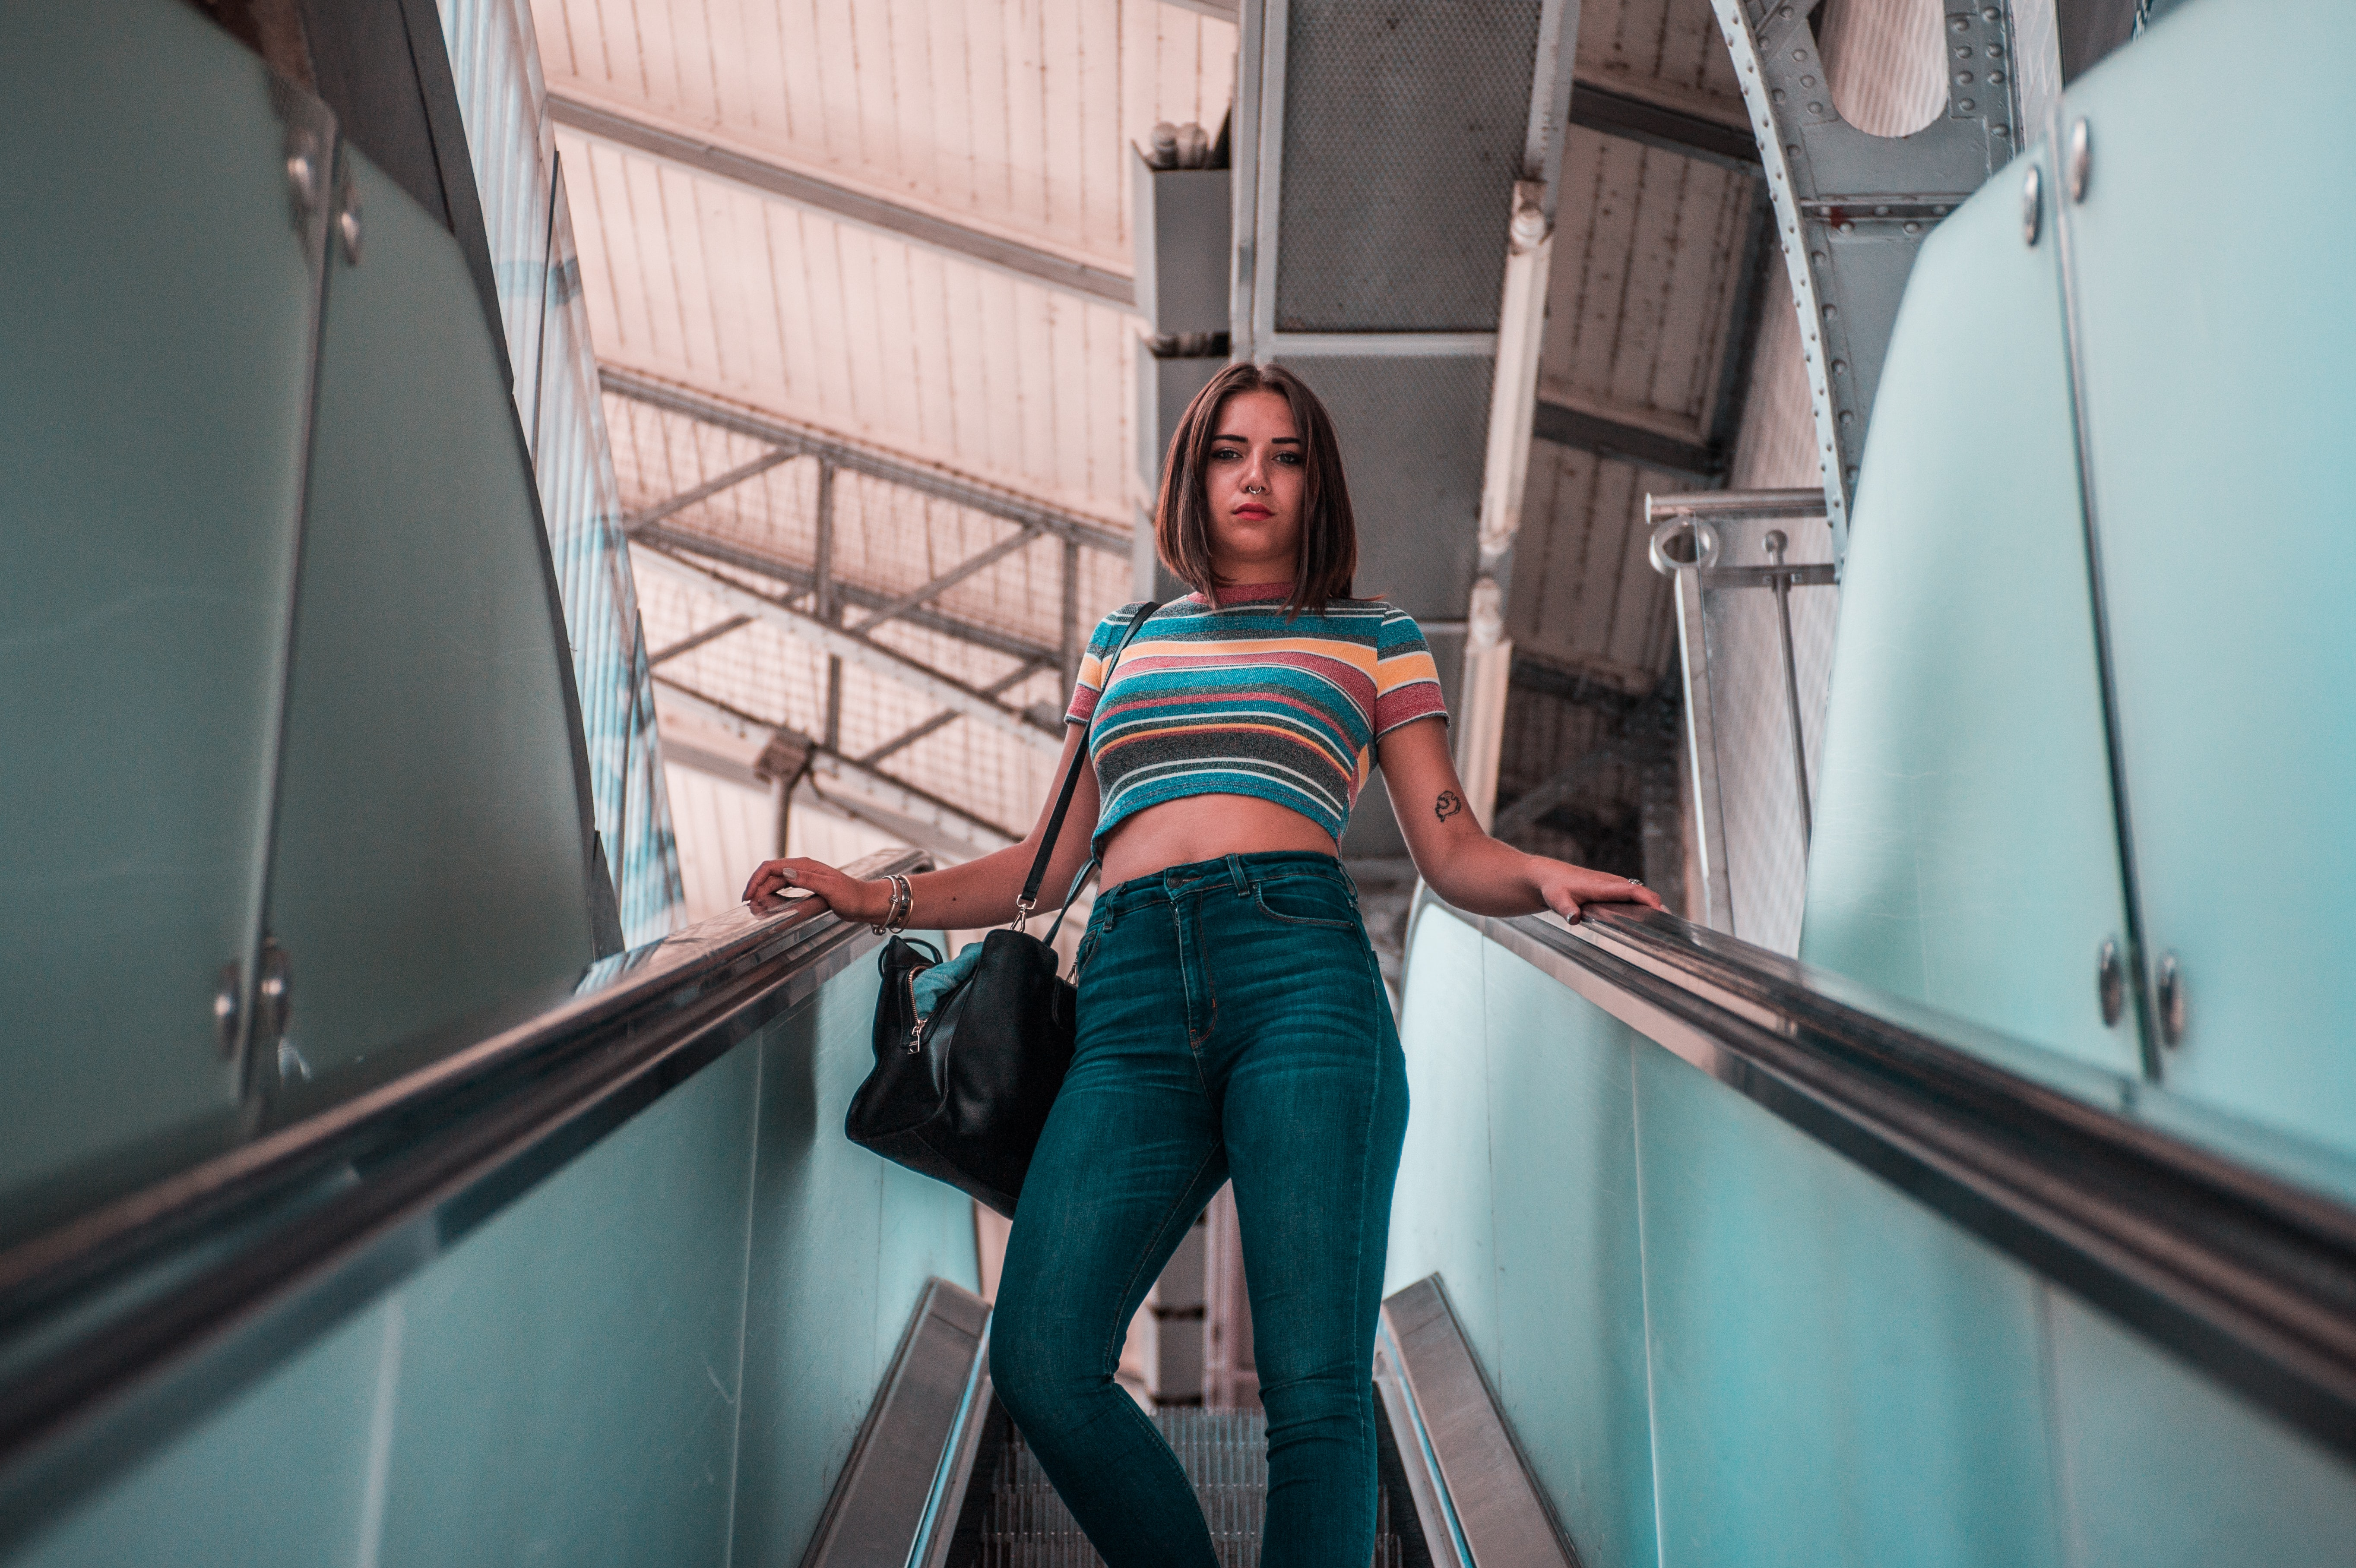 A girl wearing a striped shirt and denim jeans standing on an escalator